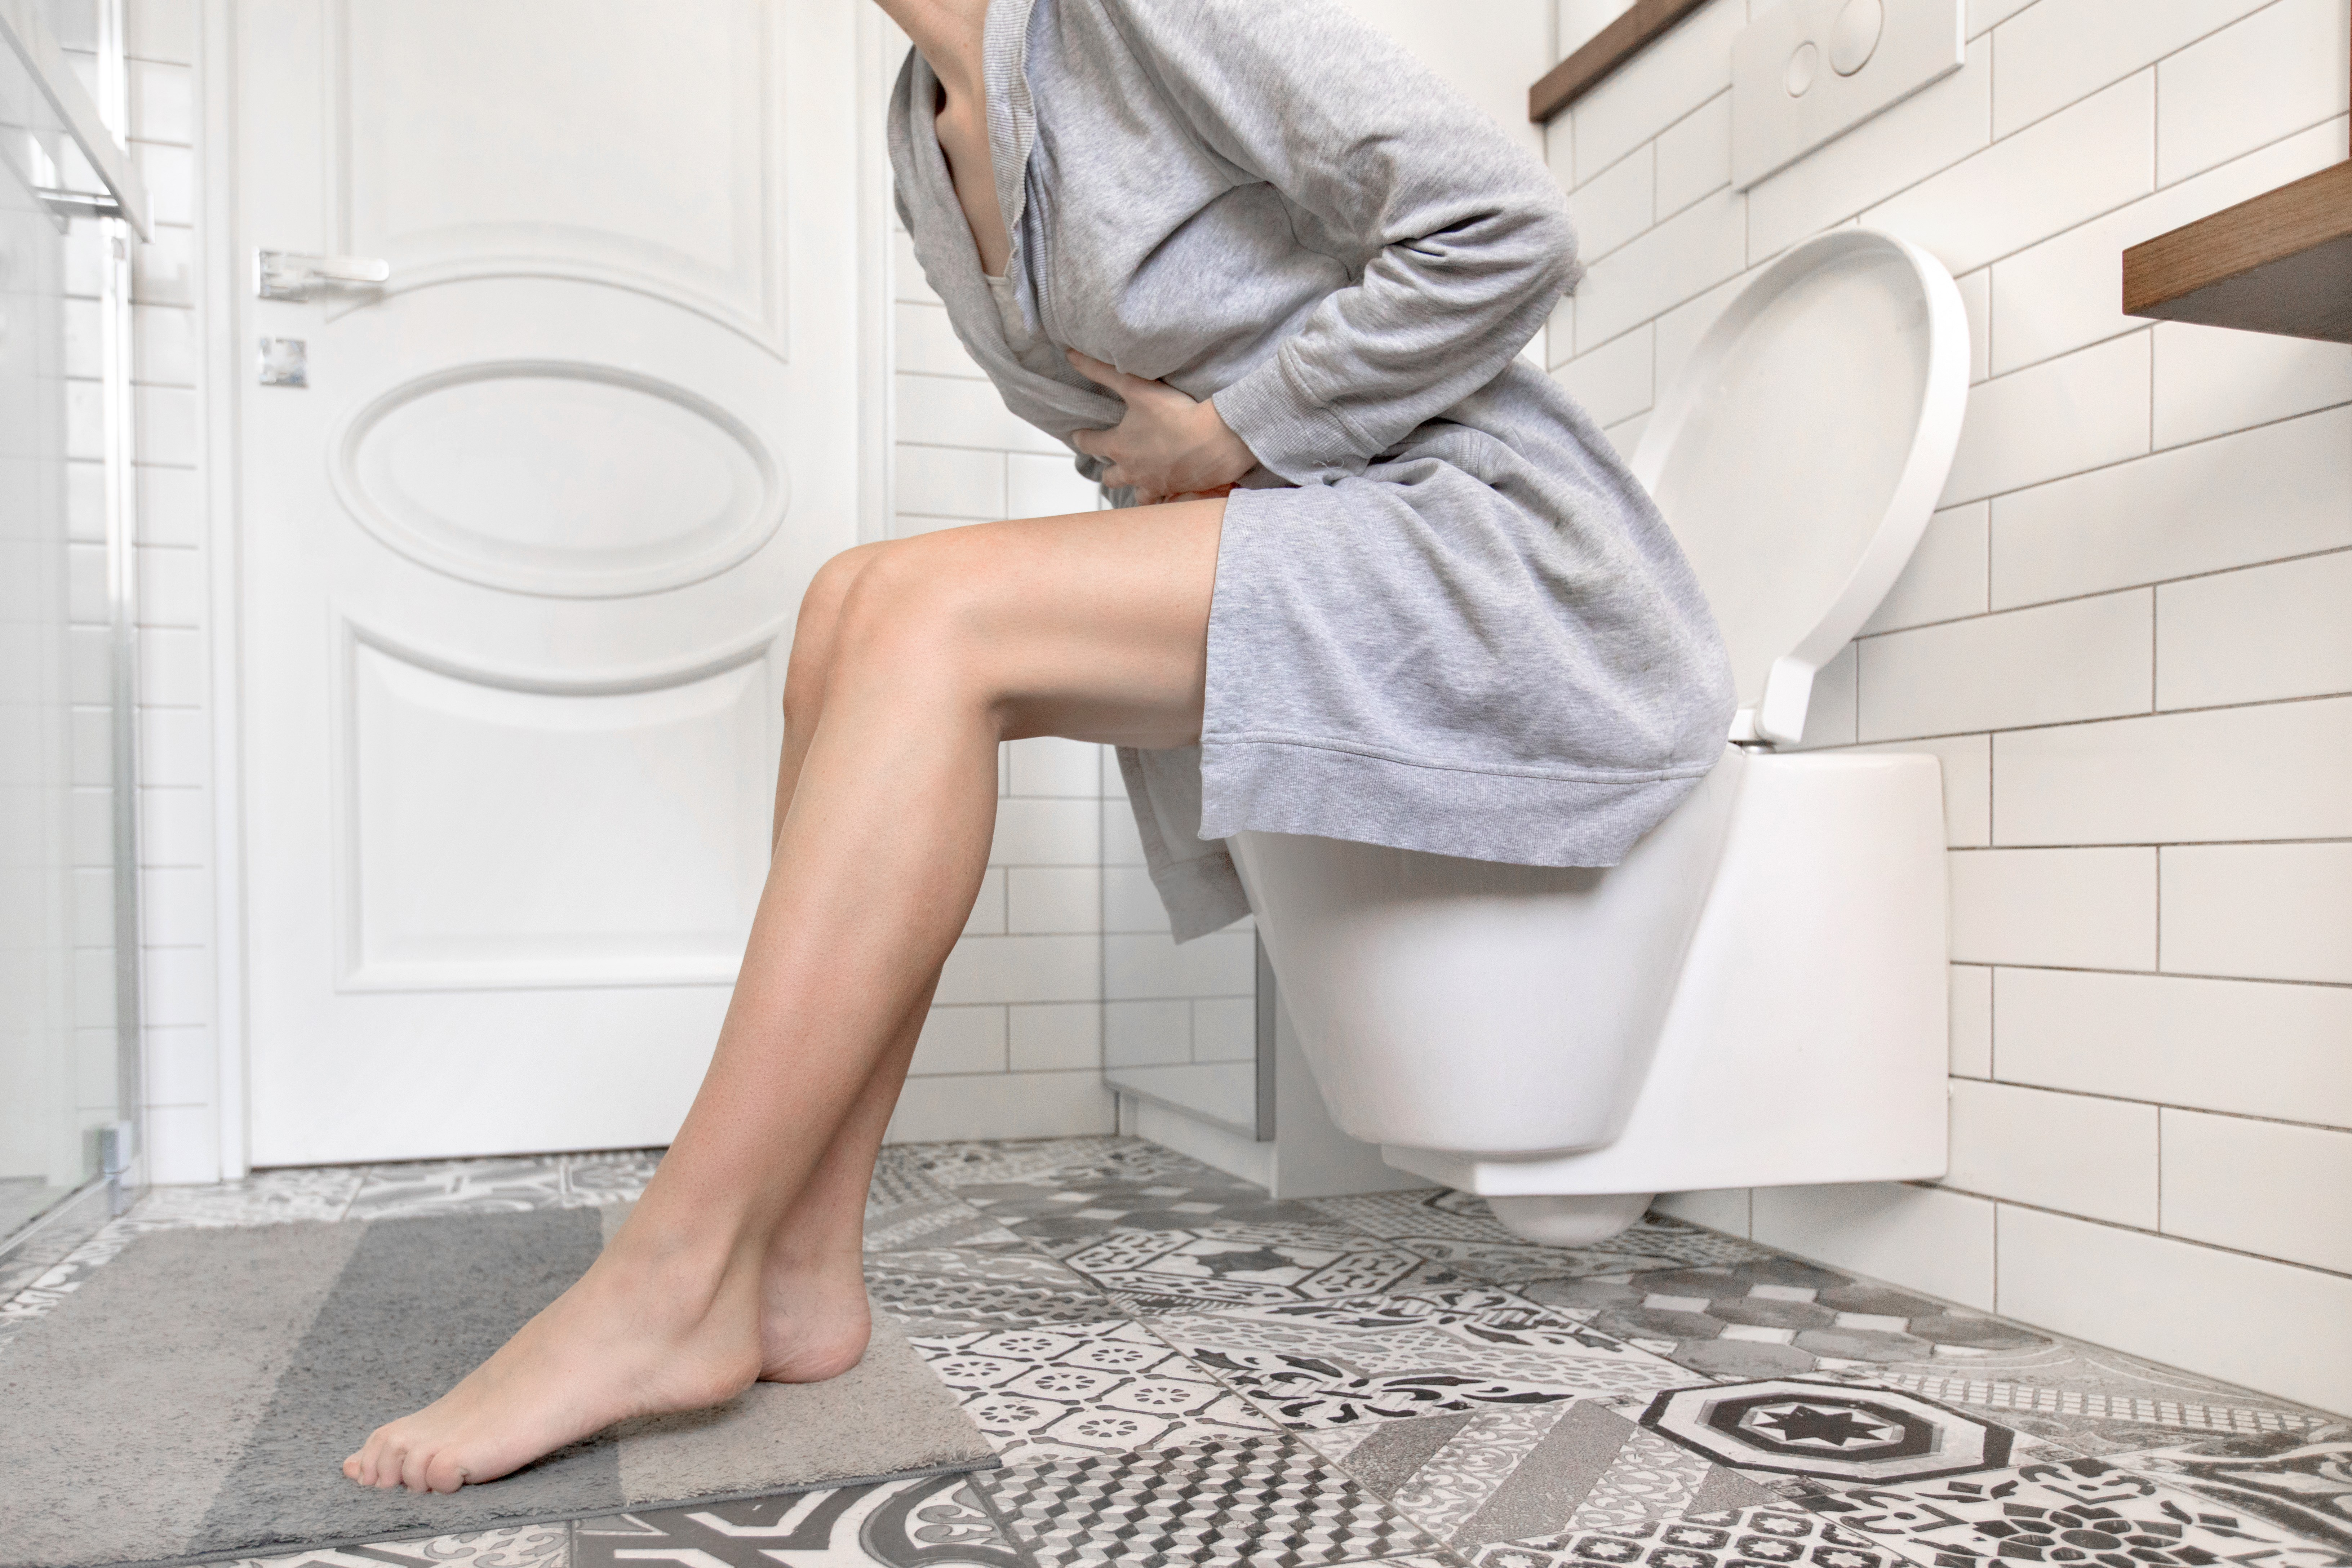 Female in pain on the toilet